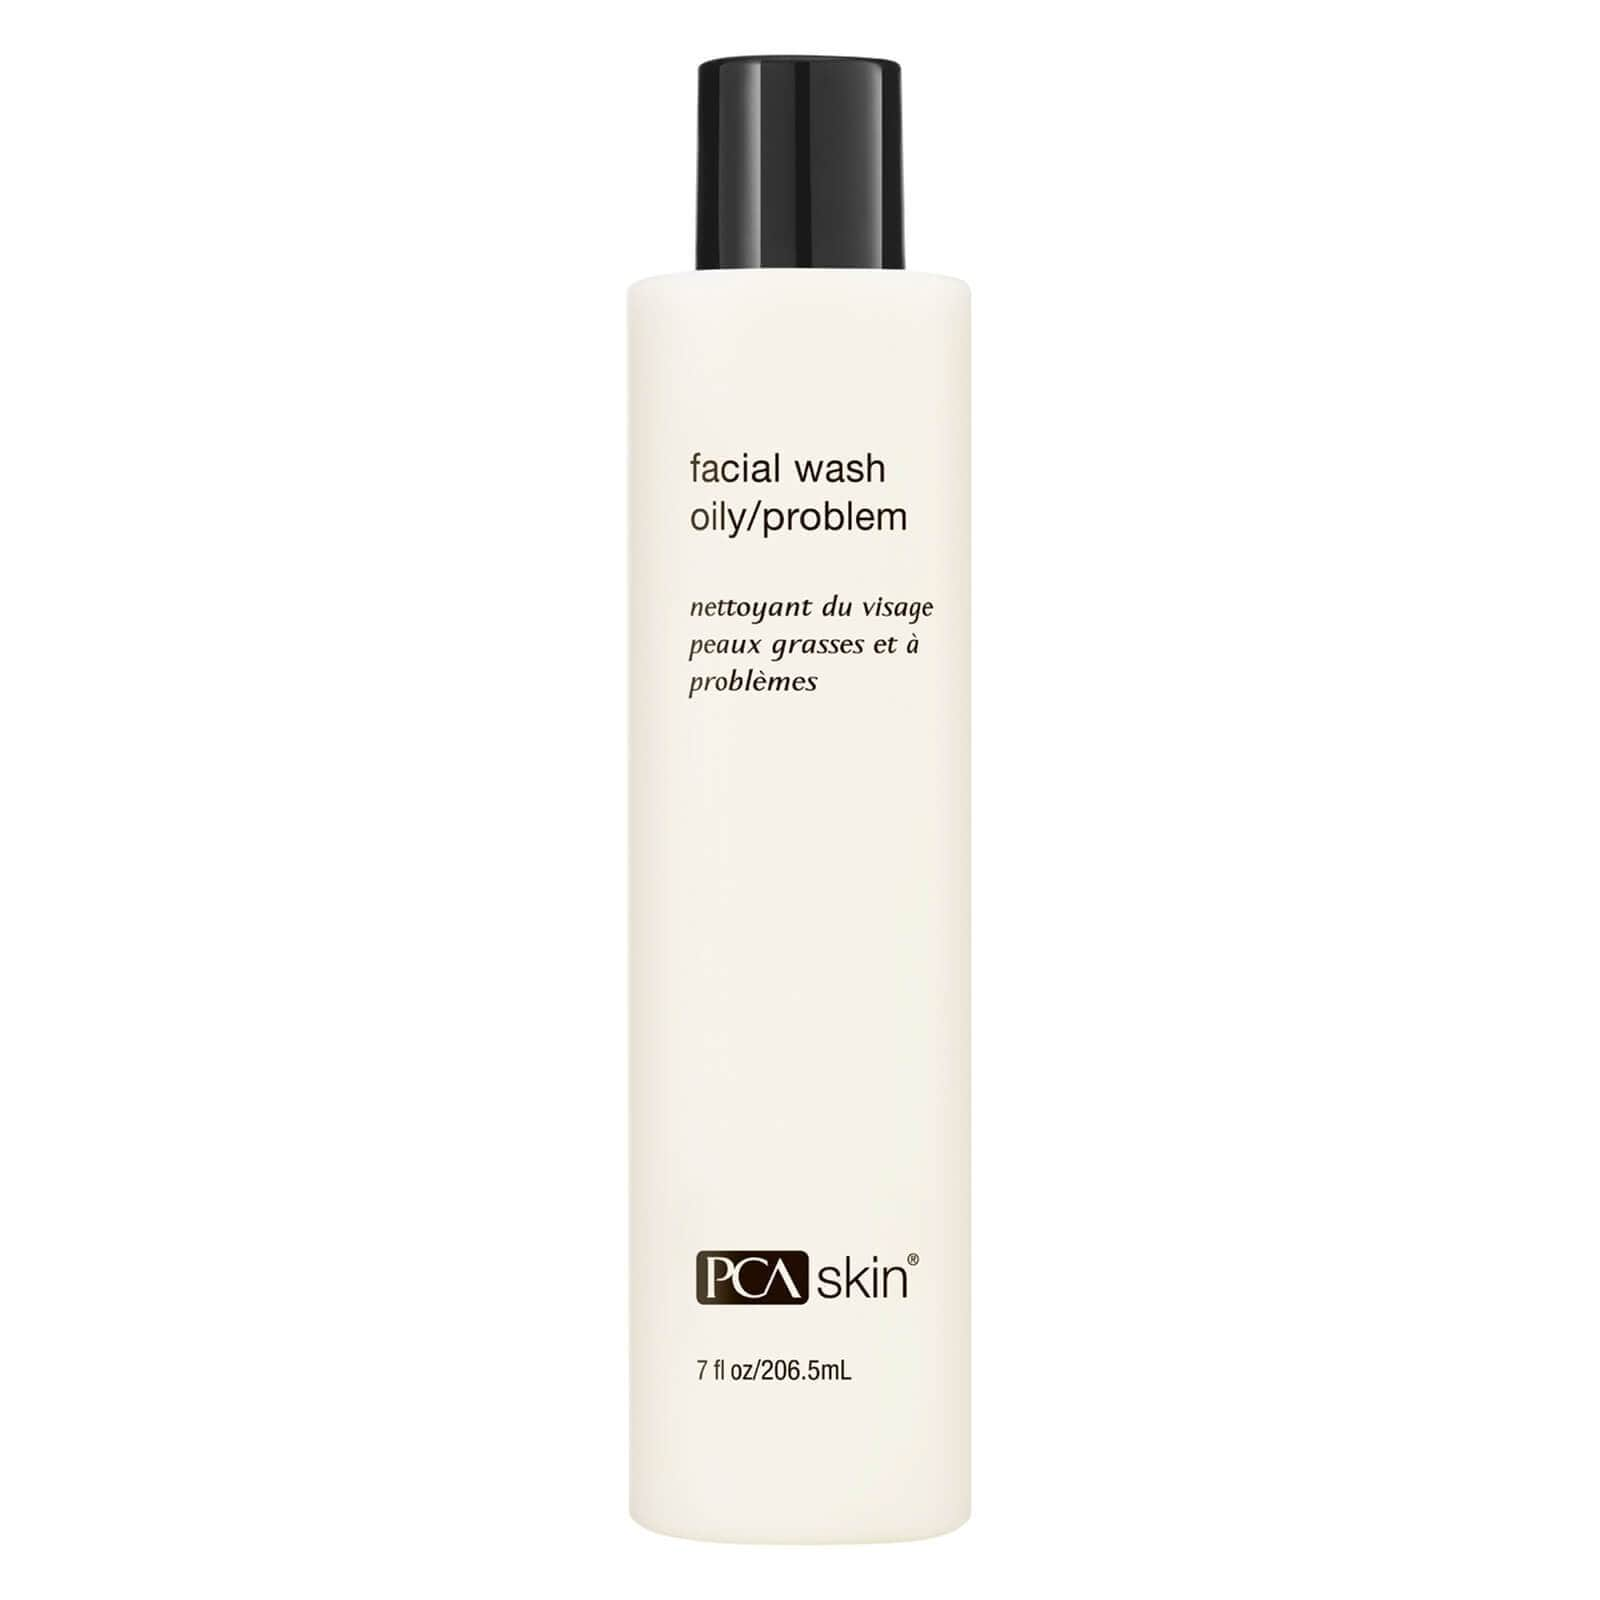 PCA Skin Cleanser for Oily/Problem Skin